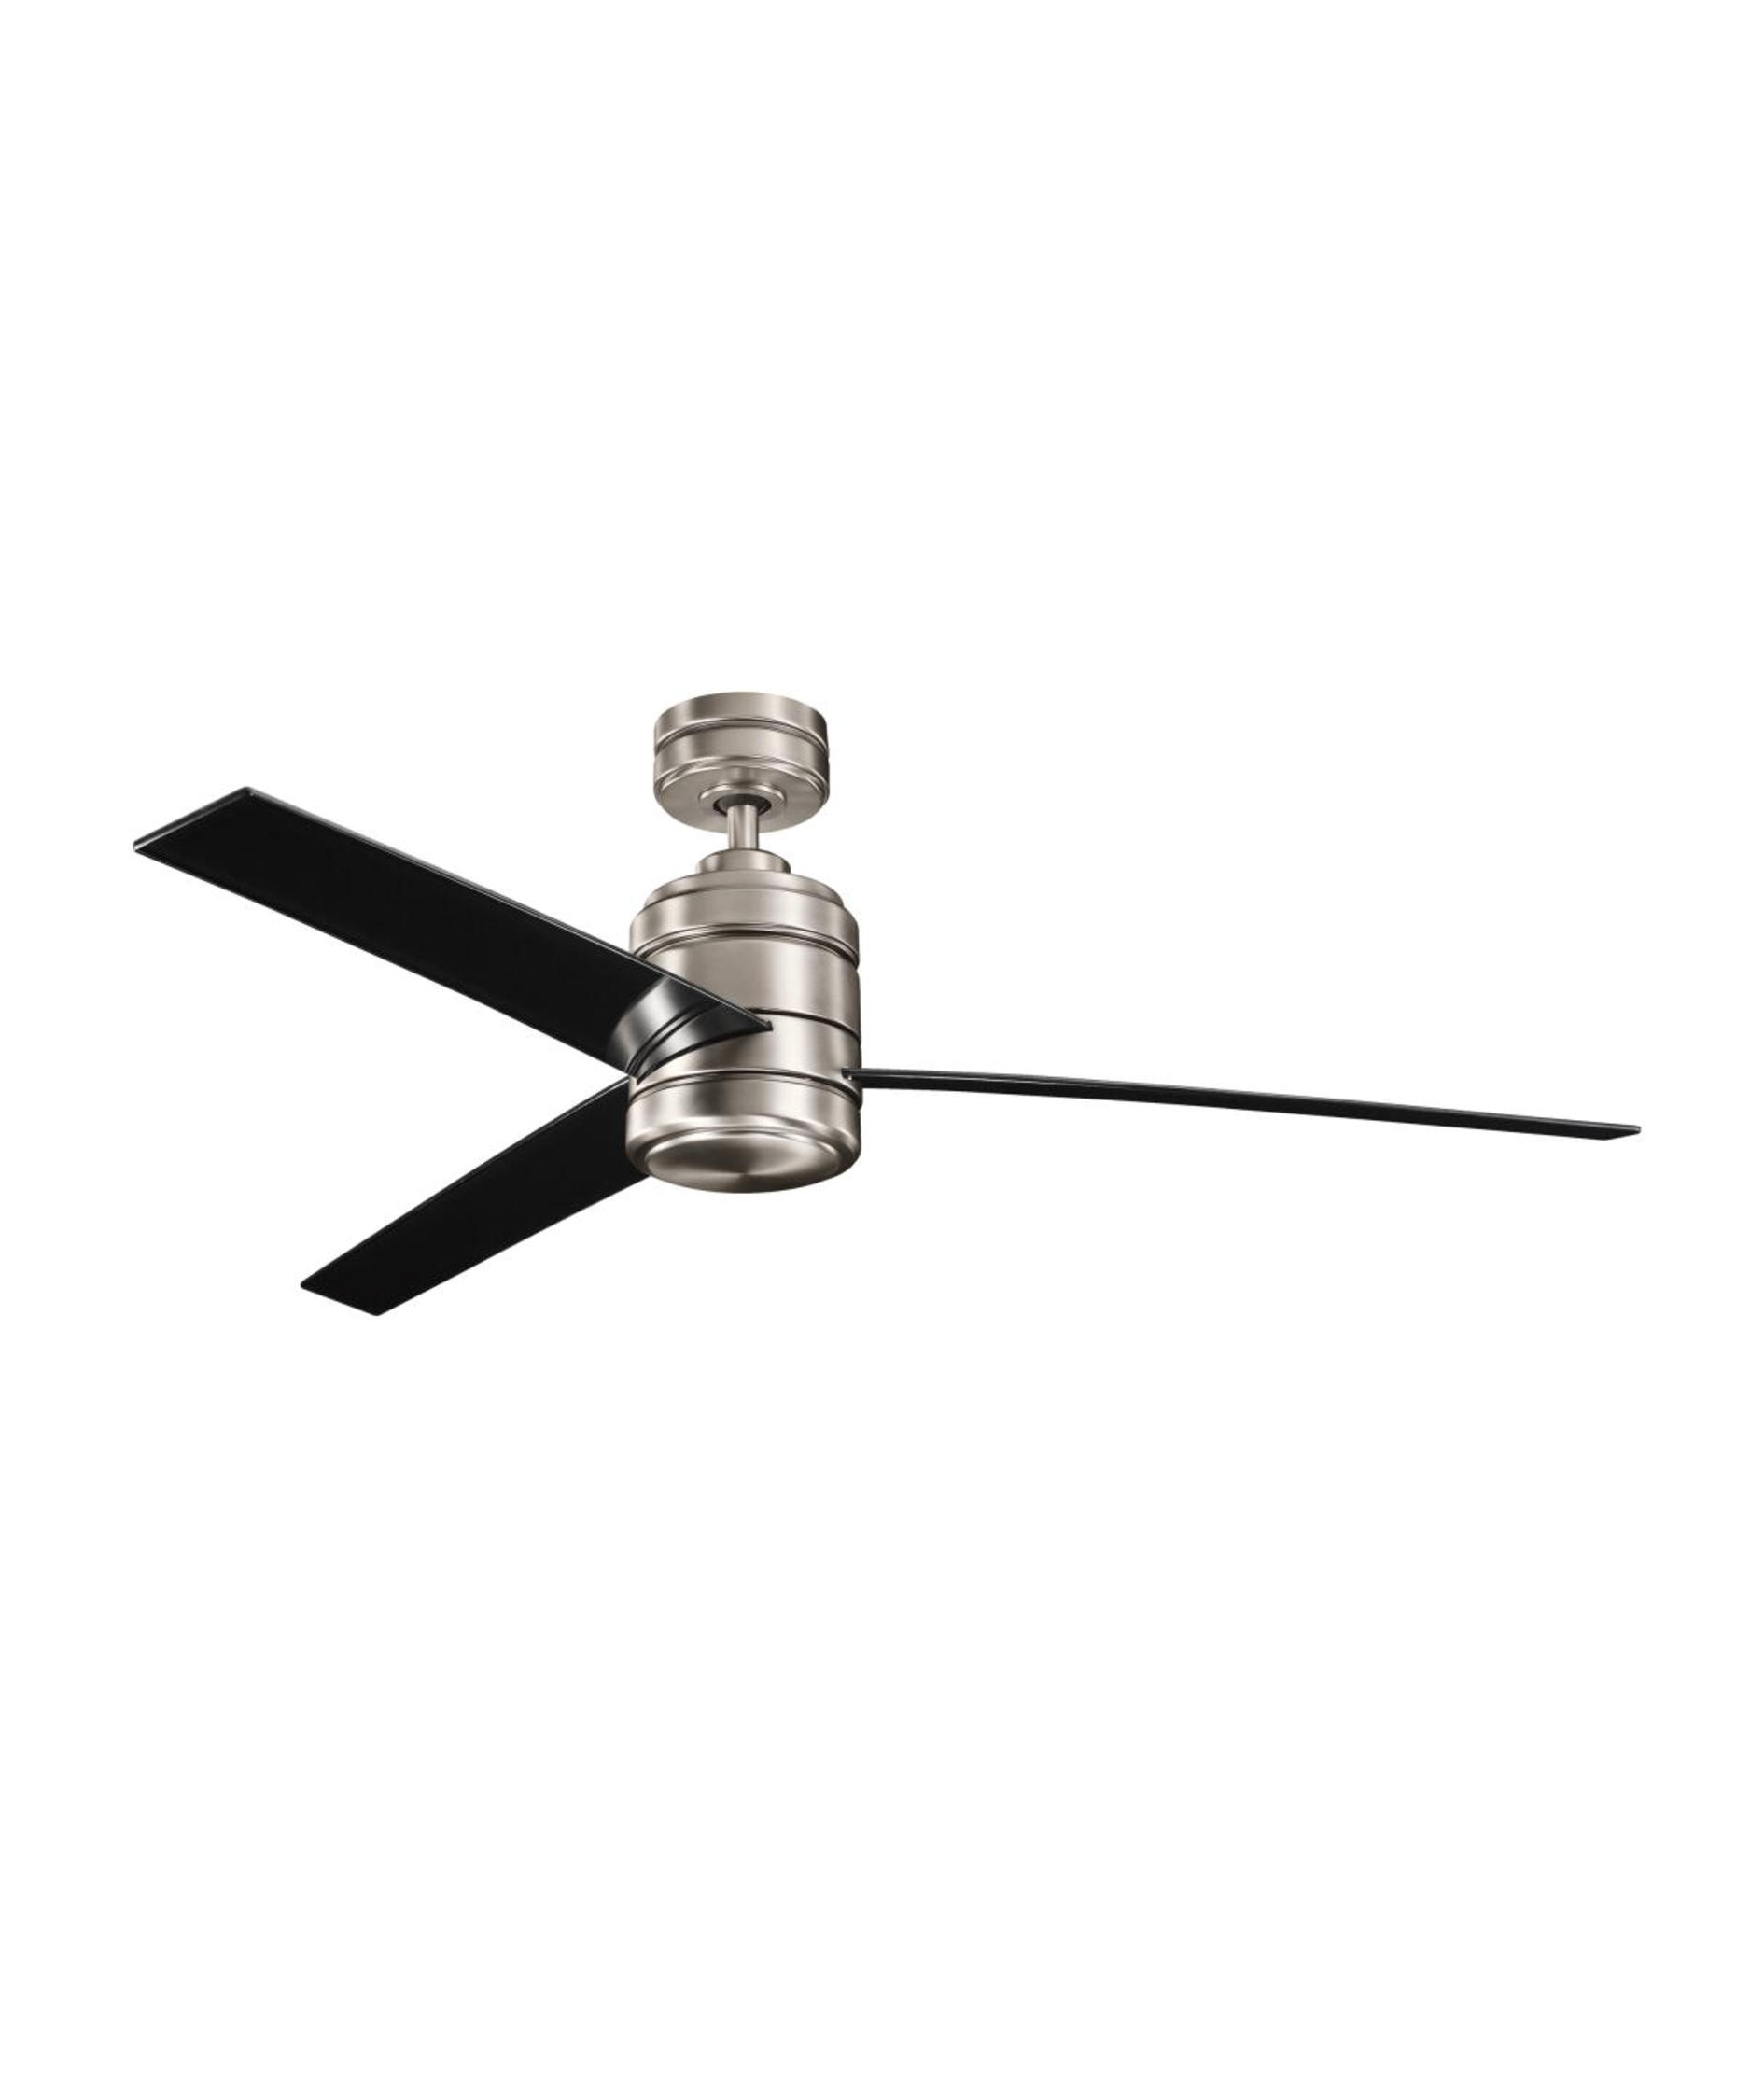 Trendy Kichler 300146 Arkwright 58 Inch 3 Blade Ceiling Fan (View 3 of 20)